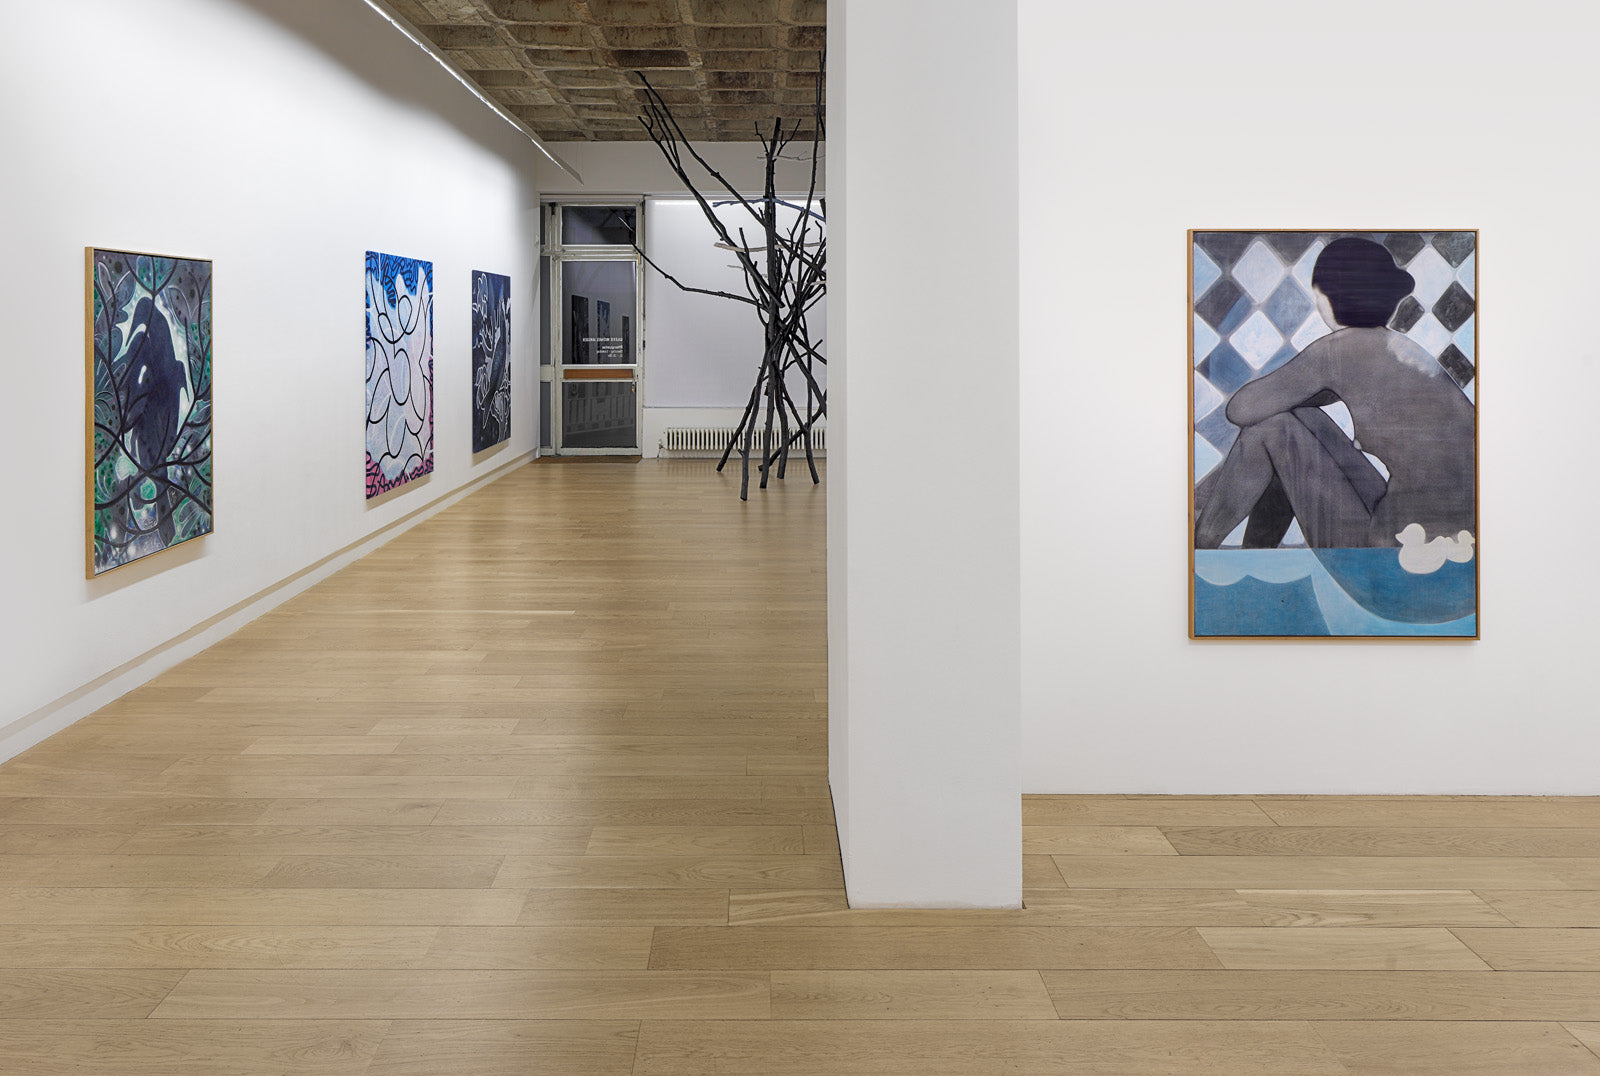 Anders Kjellesvik, Breaking Rules Together, Installation View, Galerie Michael Janssen, Berlin, 2020